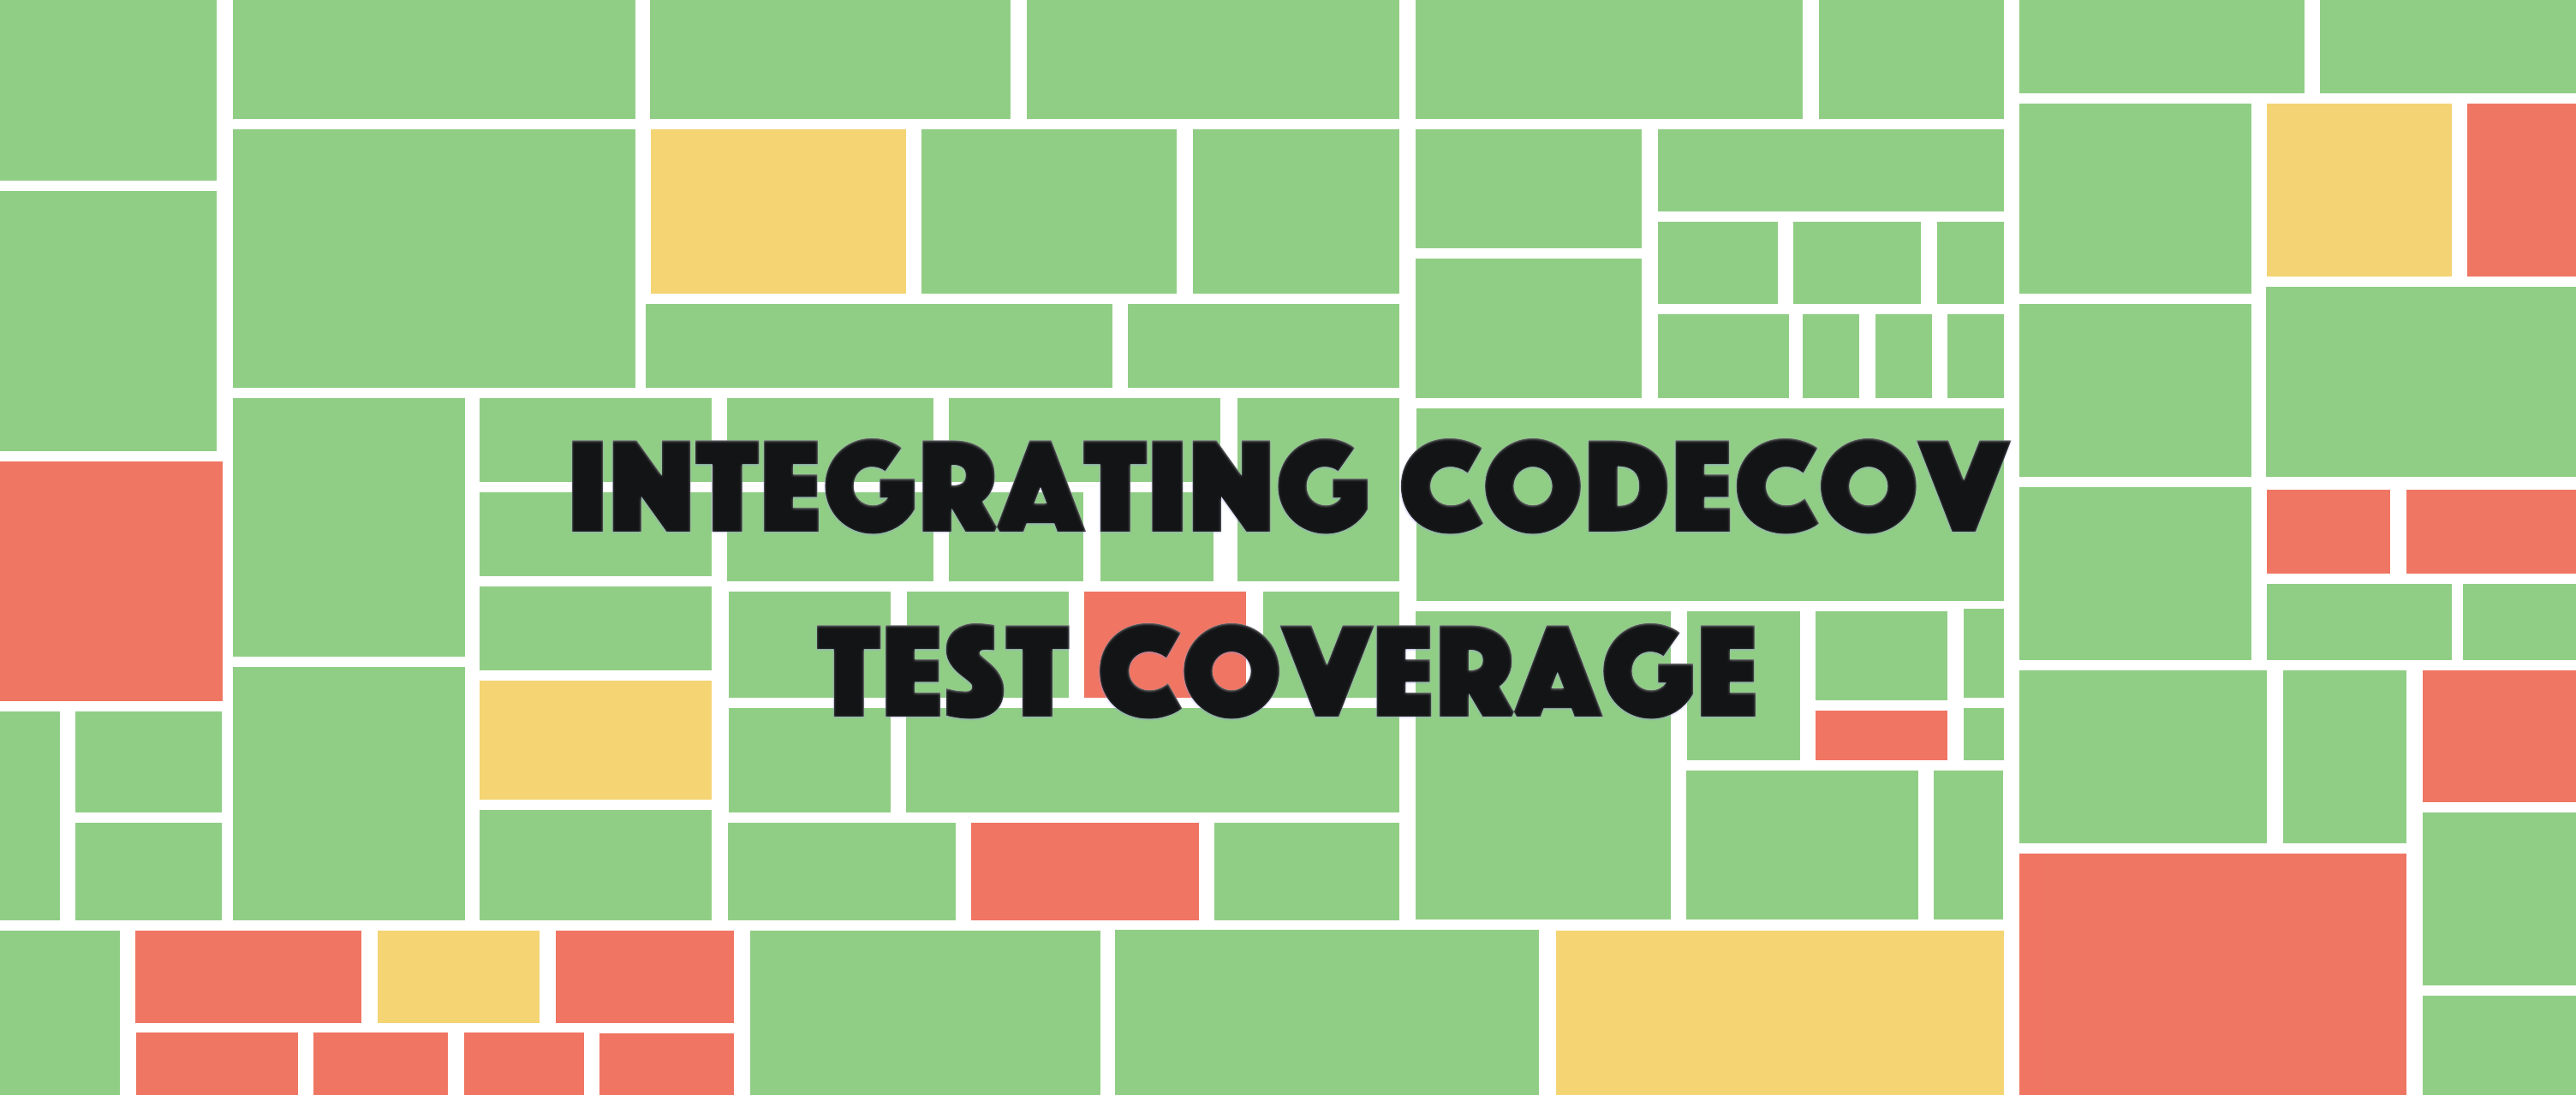 Integrating Codecov Test Coverage With Nebula Graph